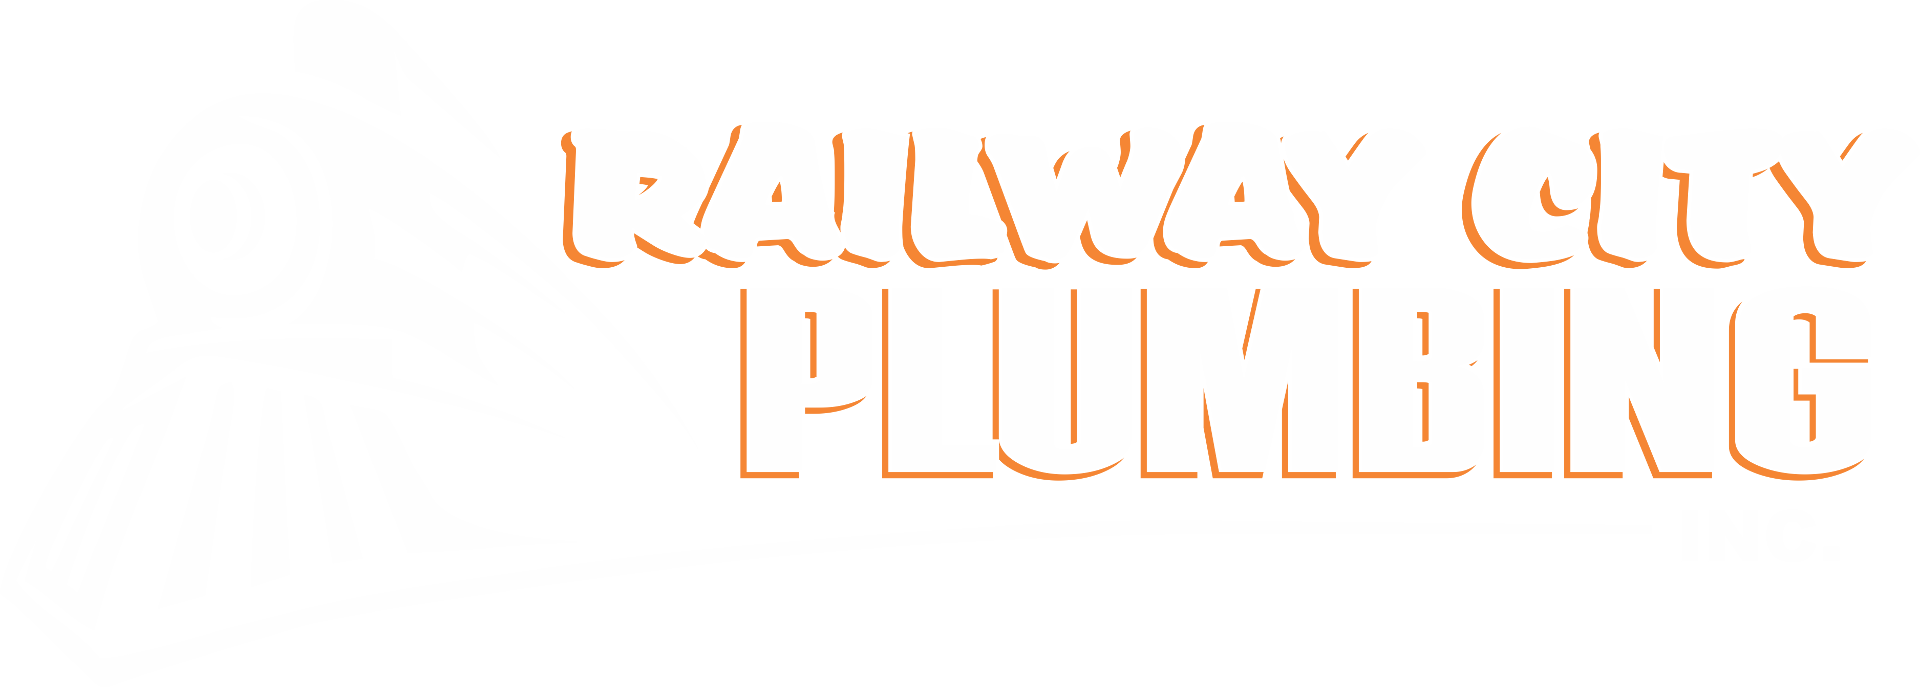 Railway City Plumbing Inc